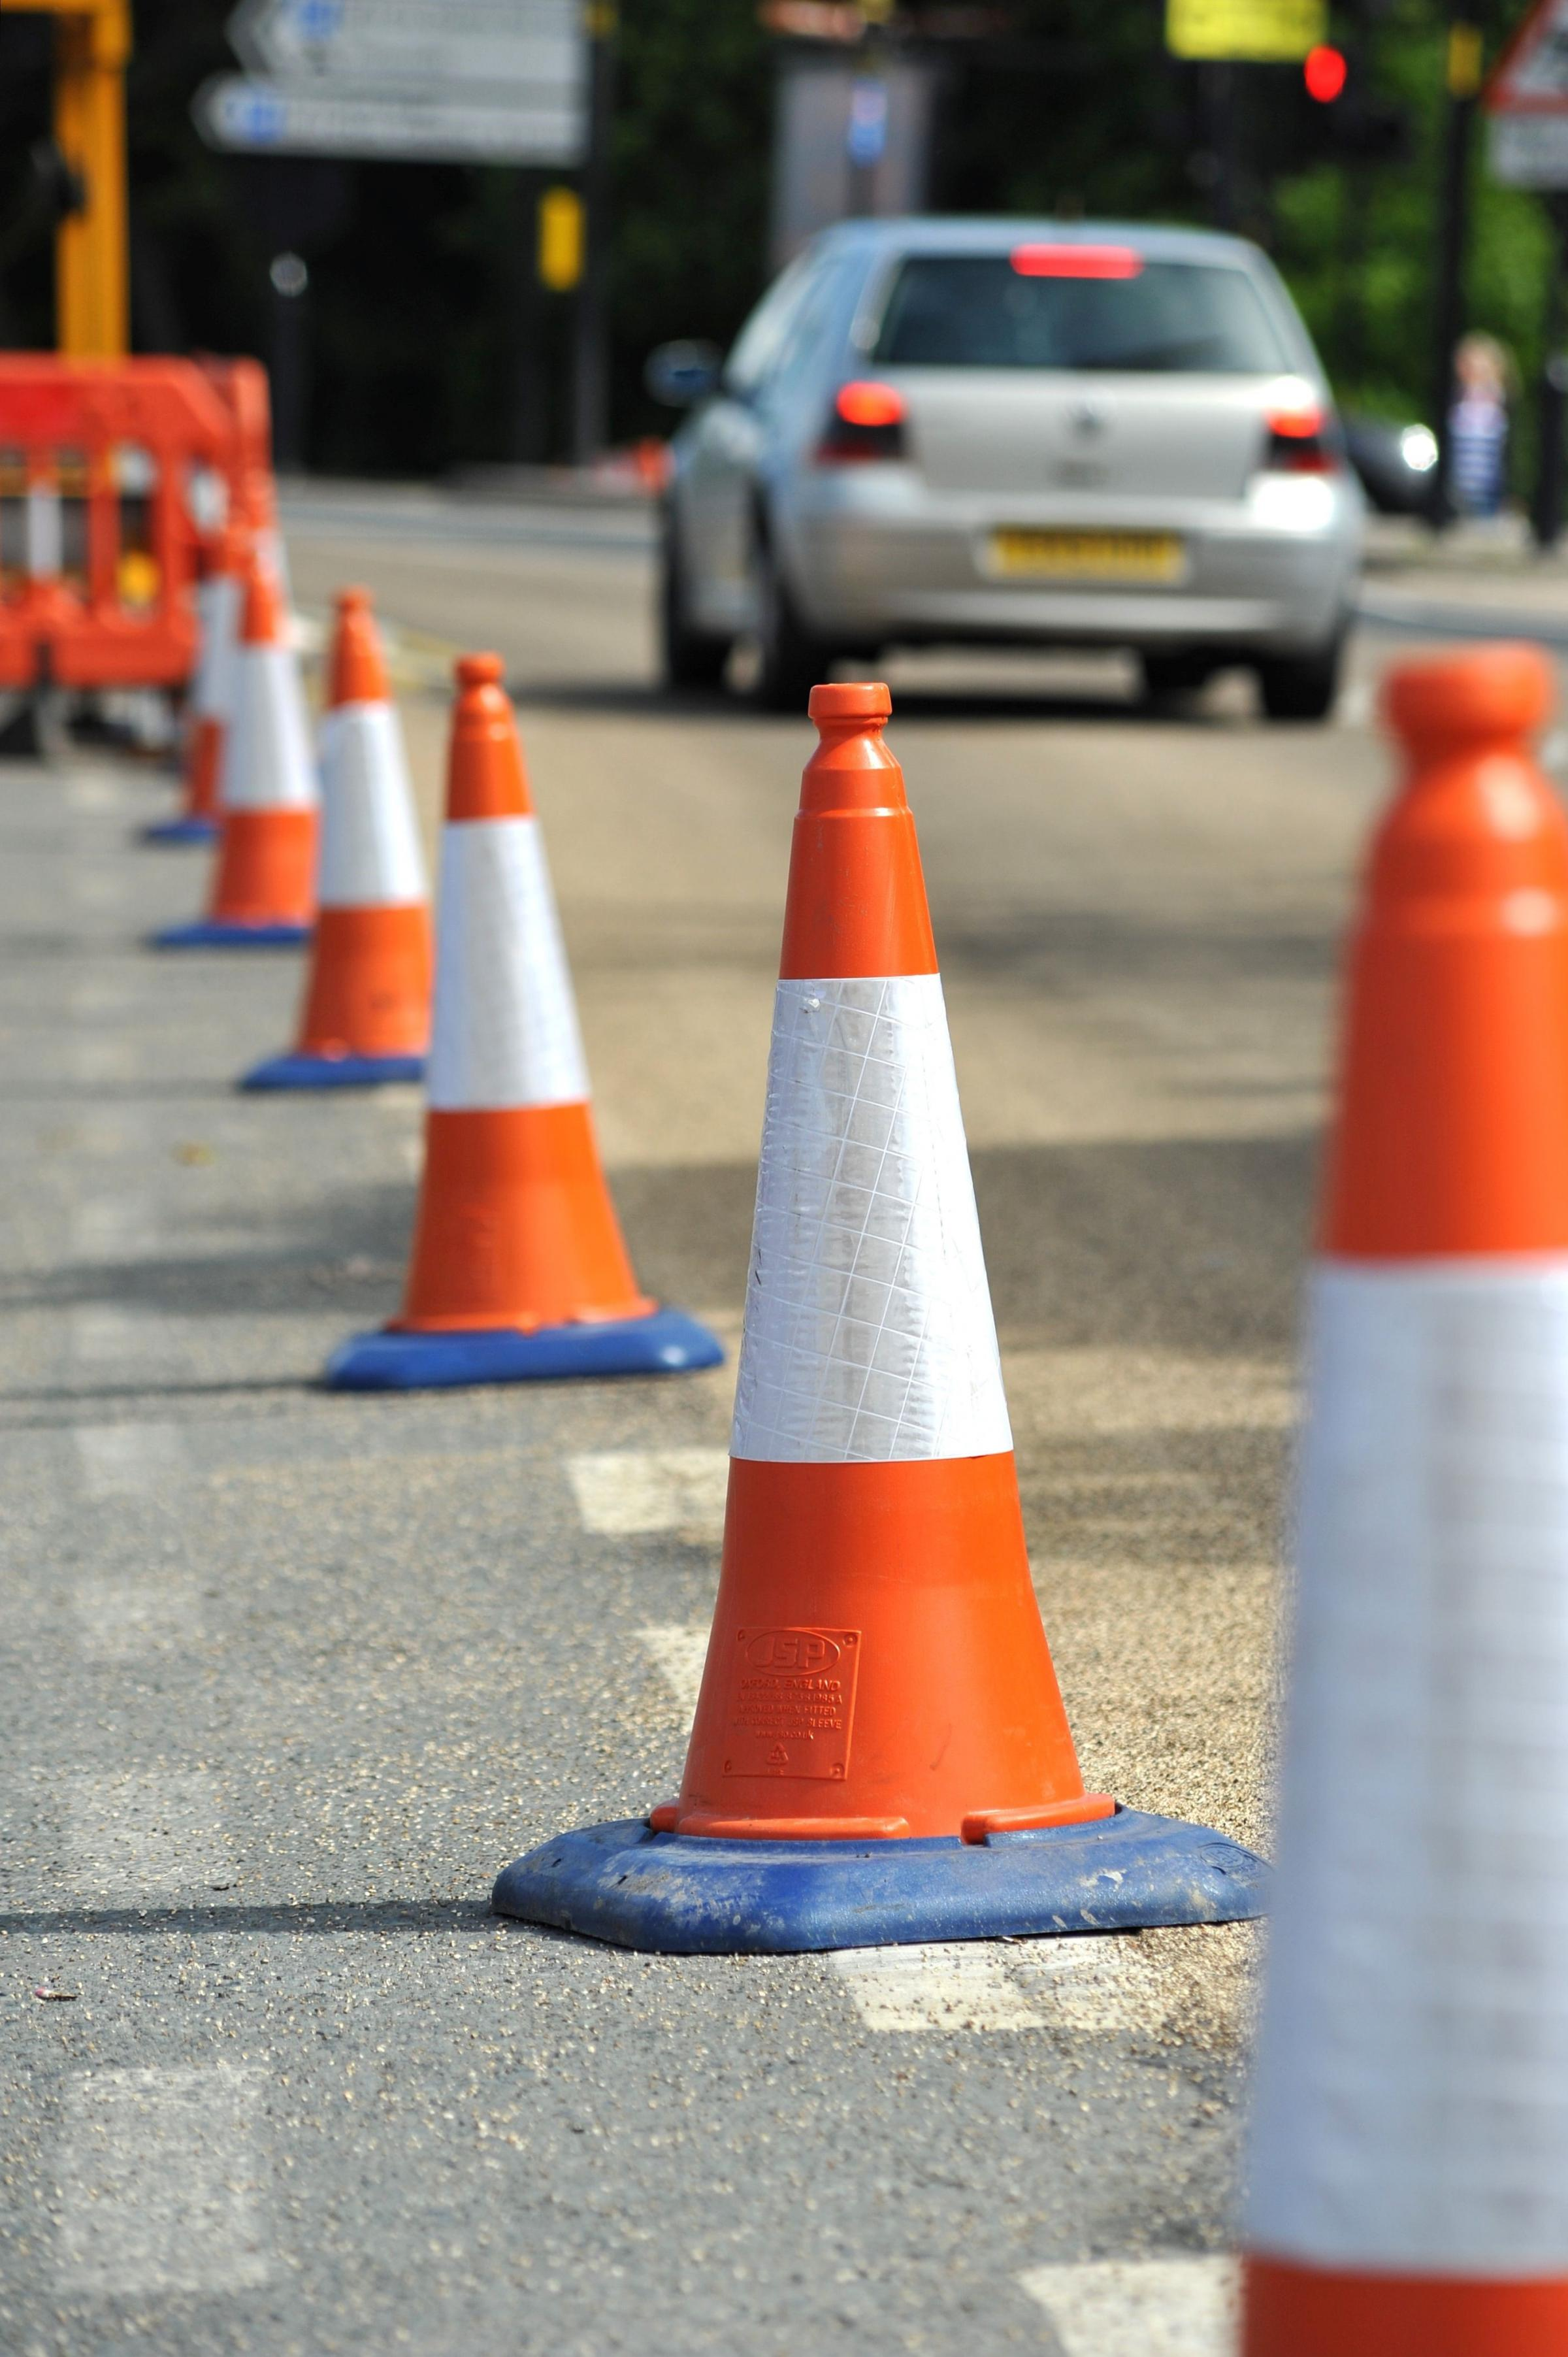 Stock photograph of traffic cones.